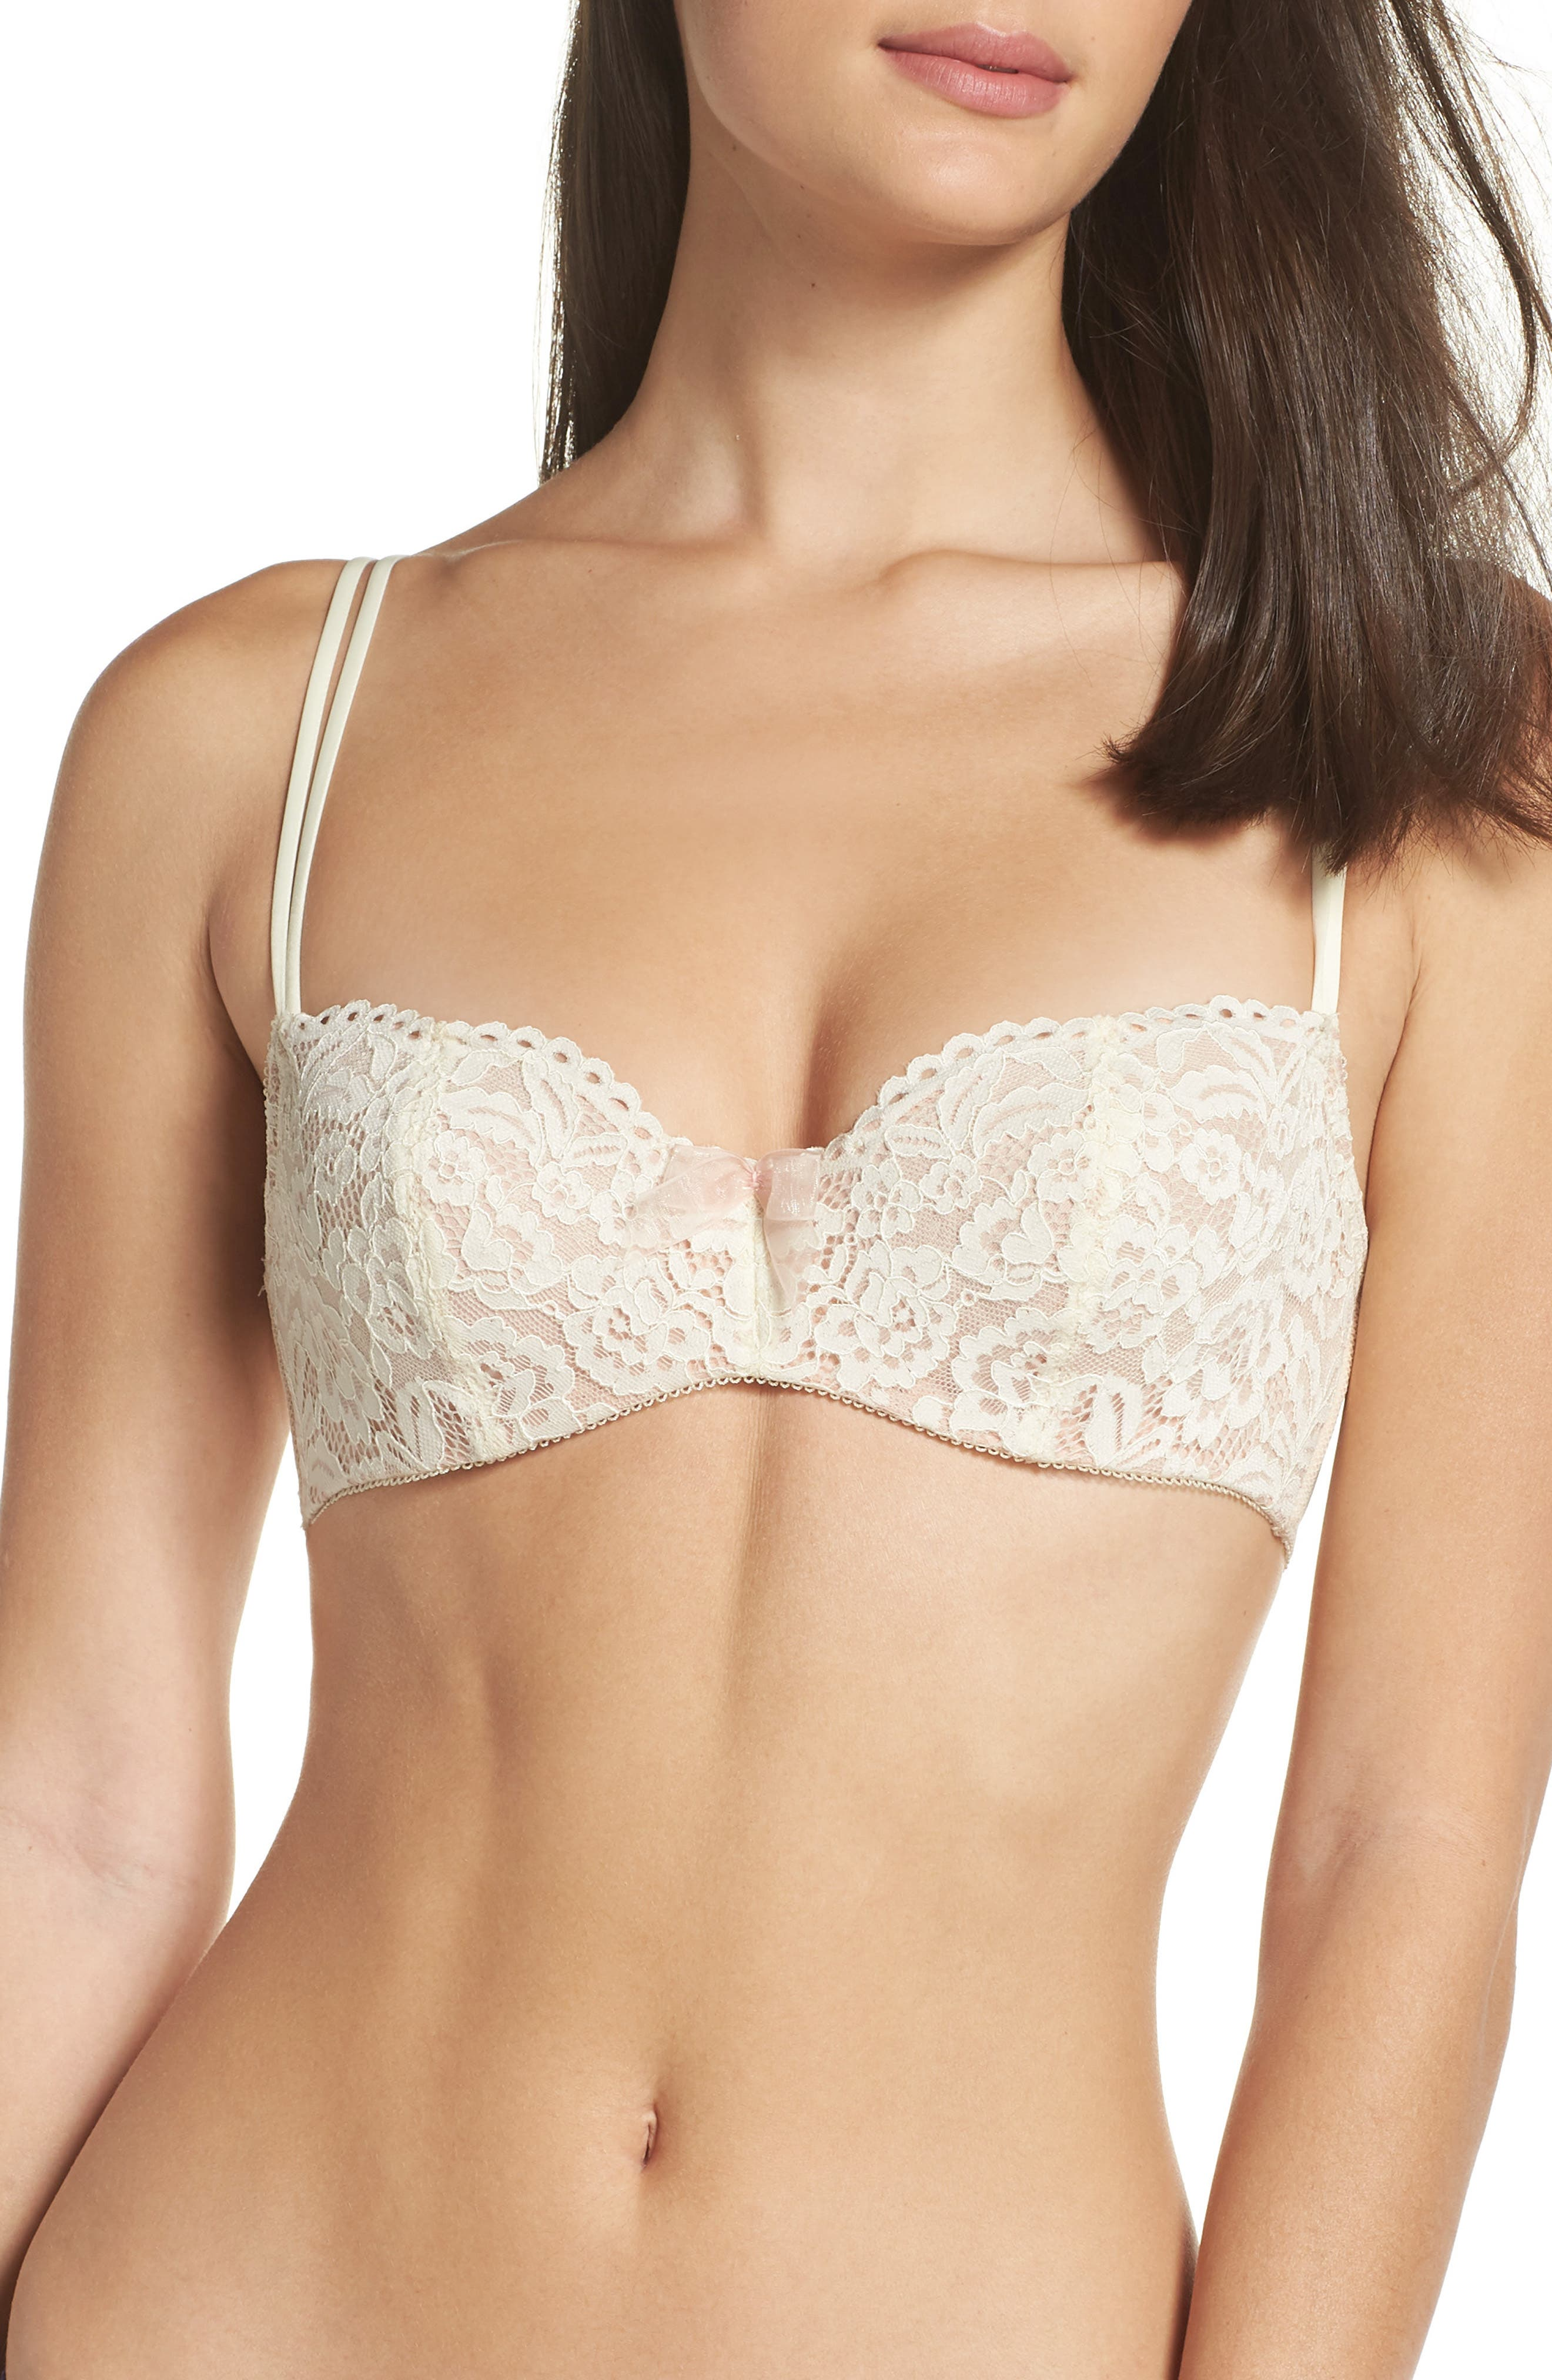 B.TEMPT'D BY WACOAL 'Ciao Bella' Underwire Balconette Bra, Main, color, IVORY